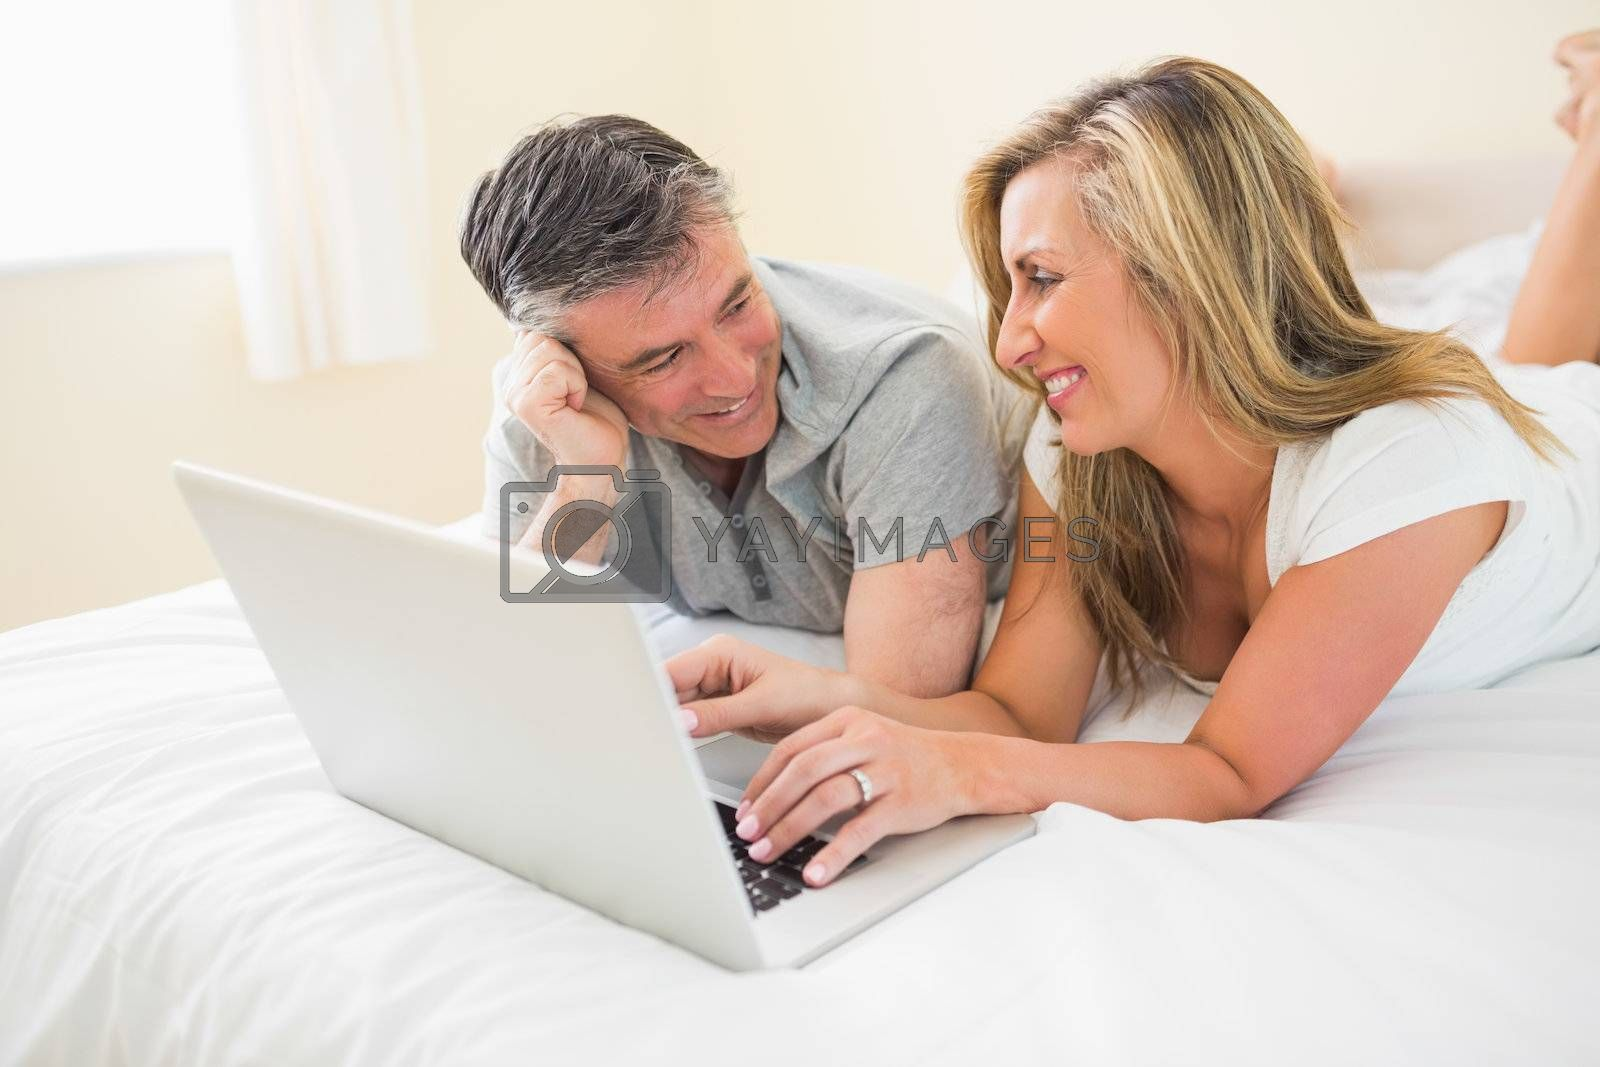 Laughing couple lying on bed using a laptop by Wavebreakmedia